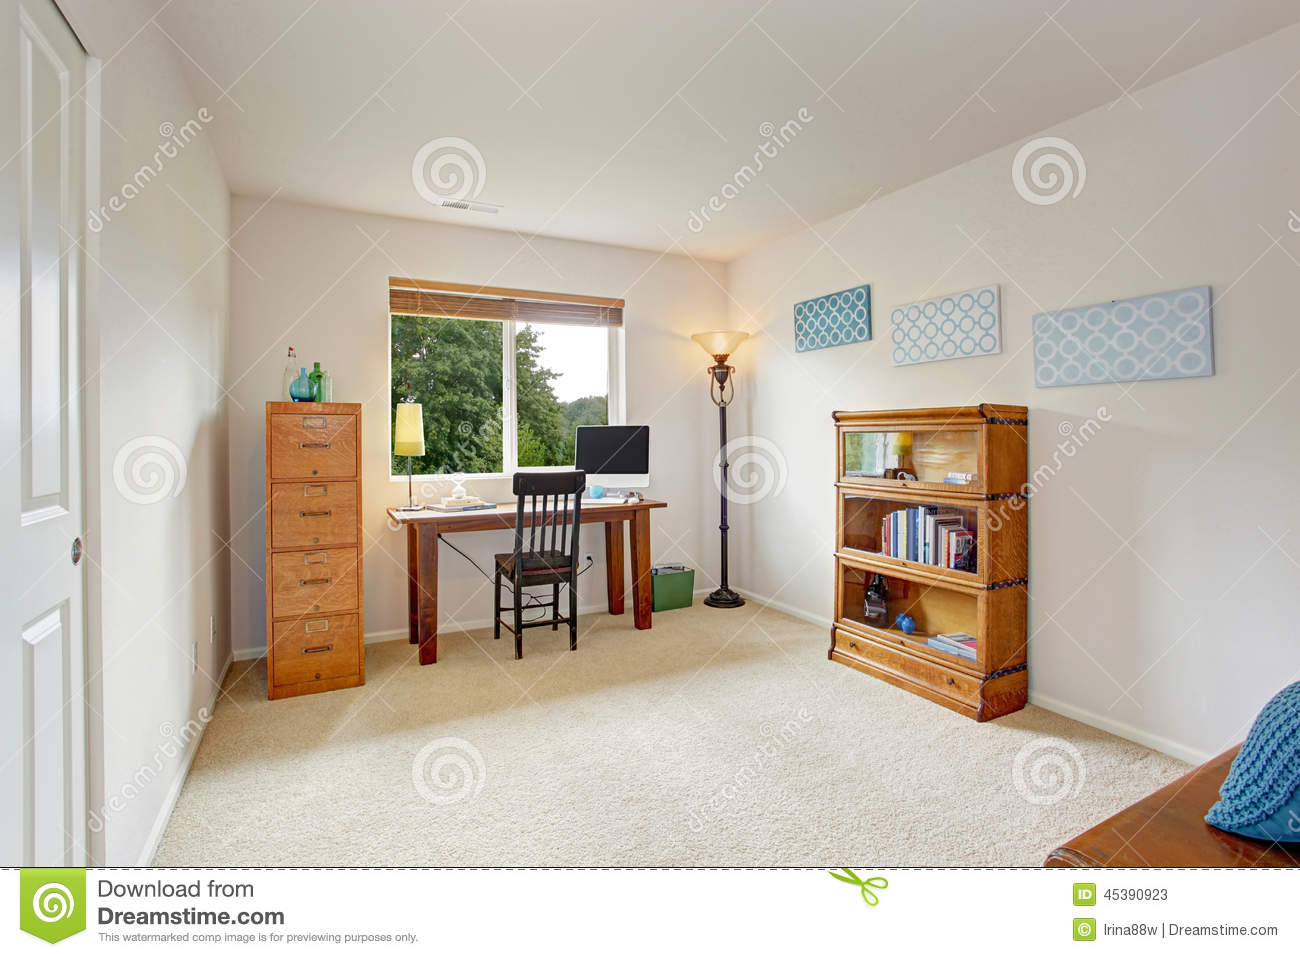 Office Interior With Simple Desk And Bookshelf Stock Photo